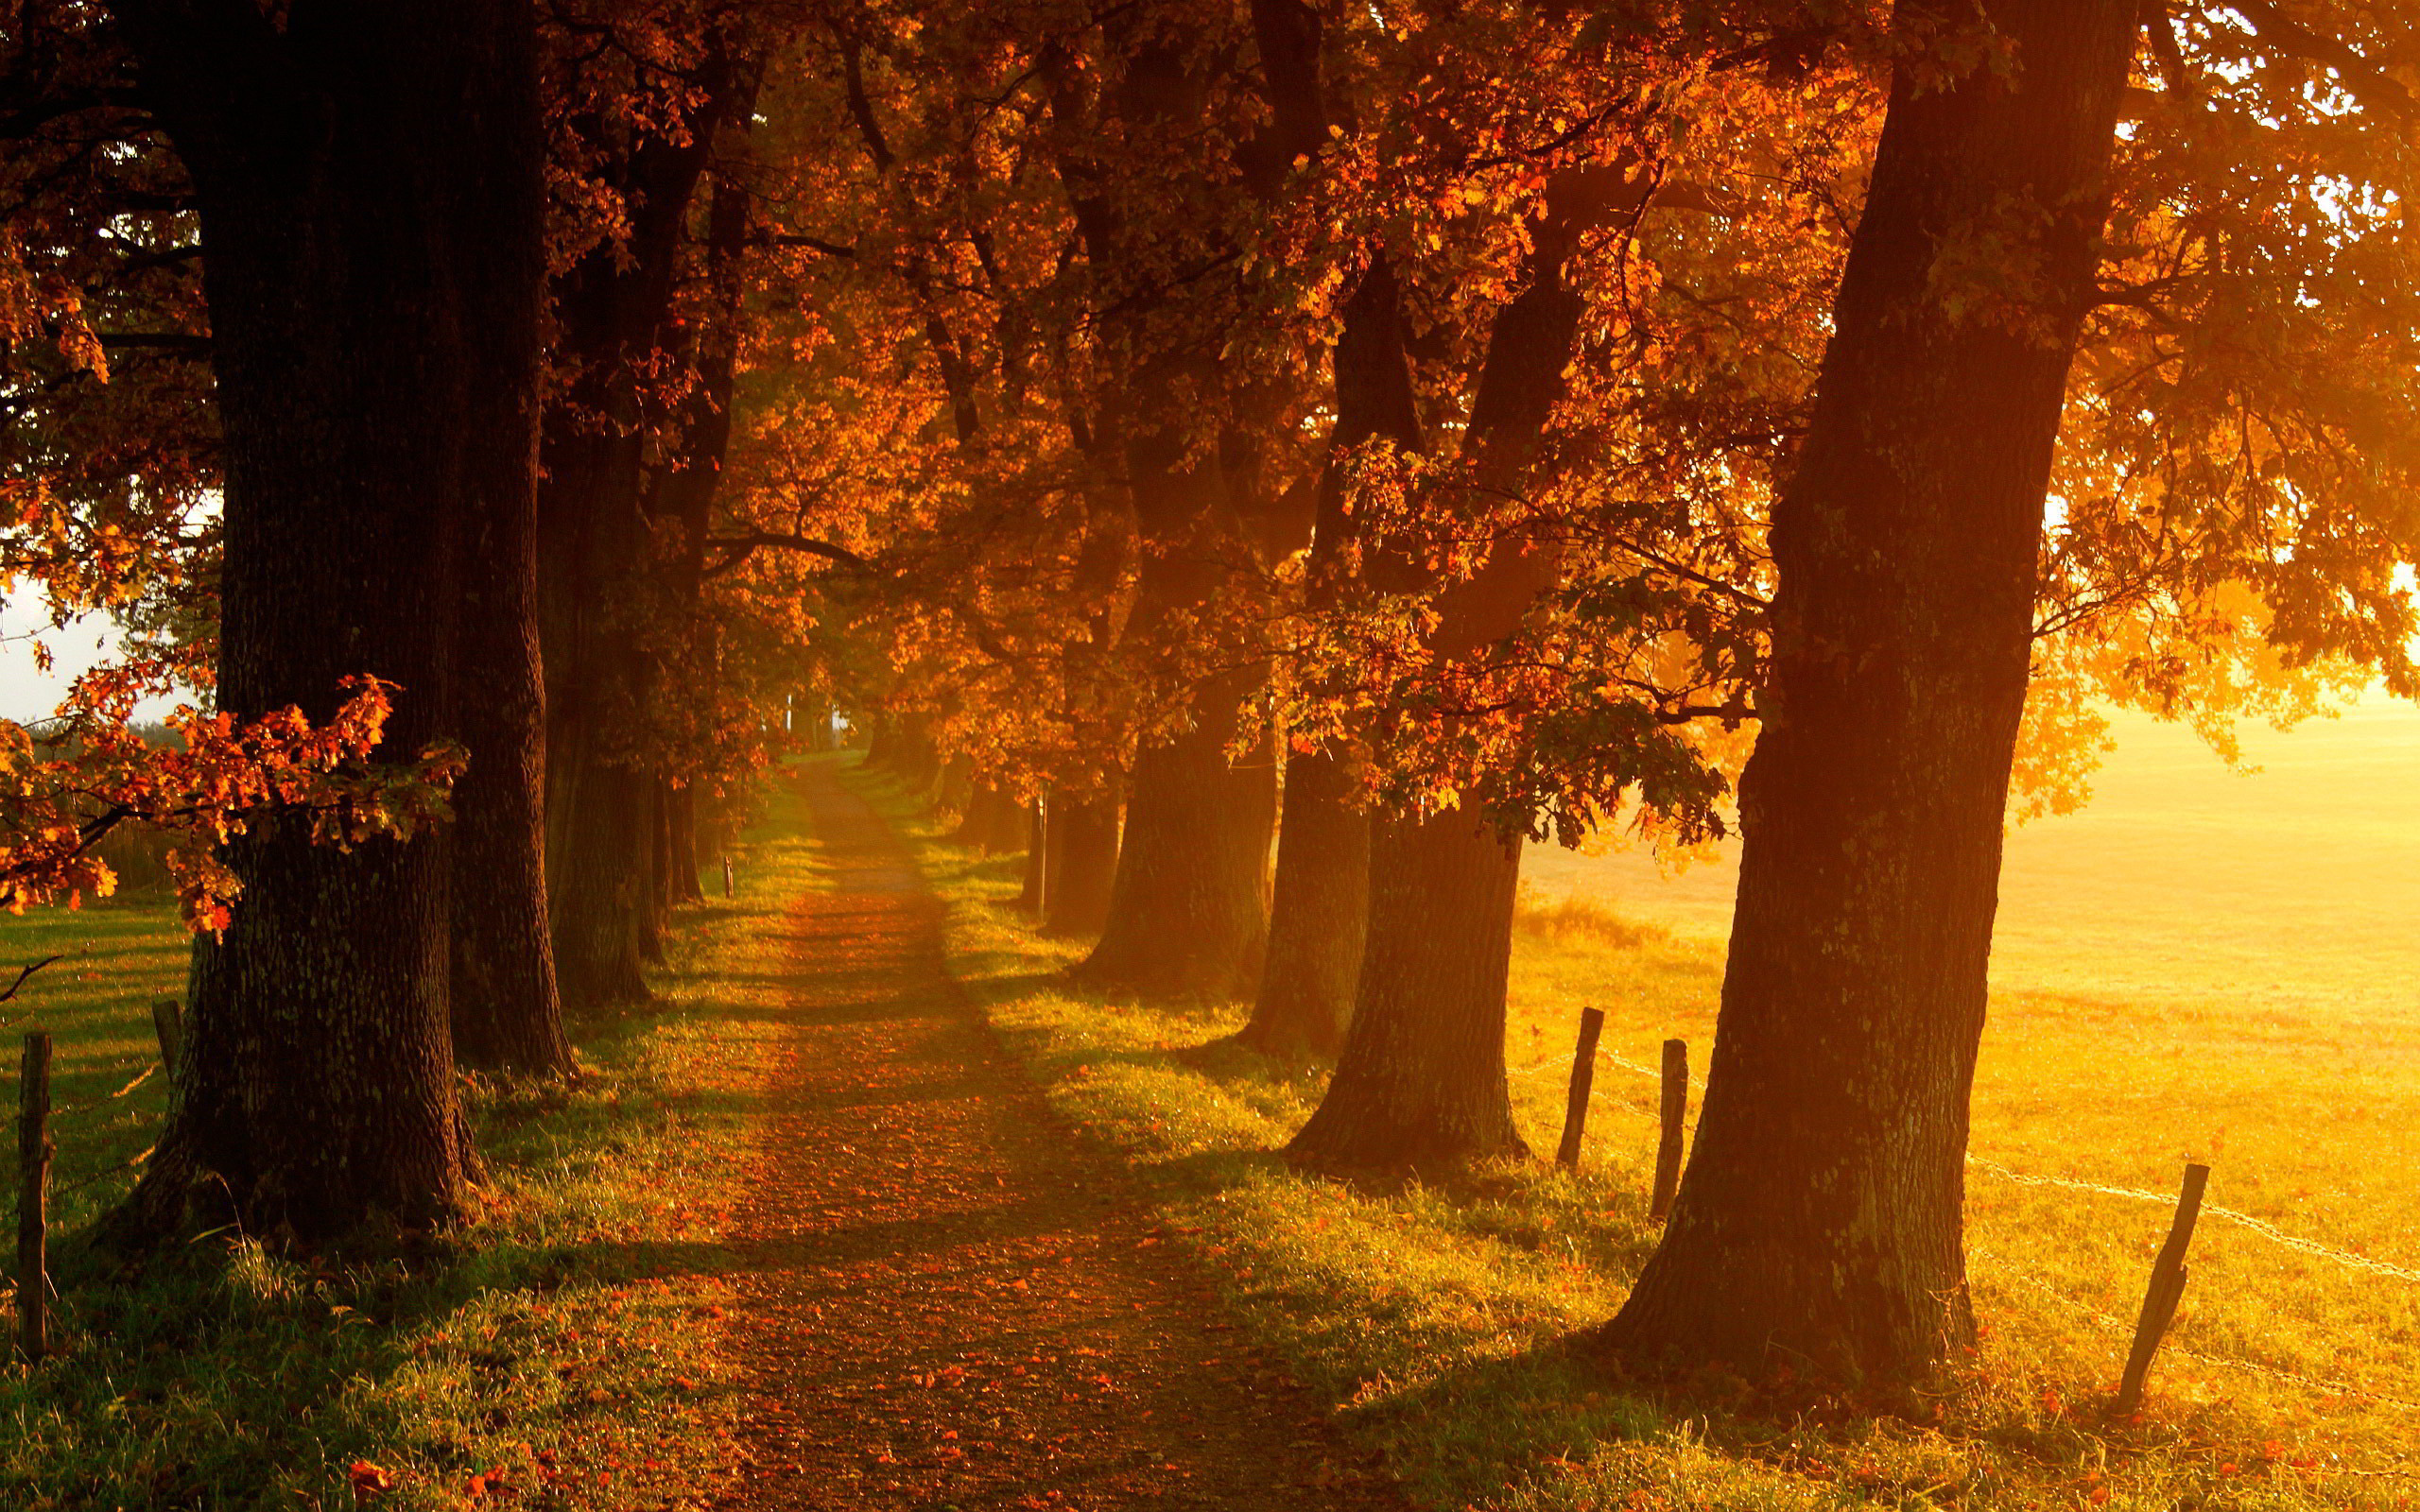 fall scenery backgrounds 183��